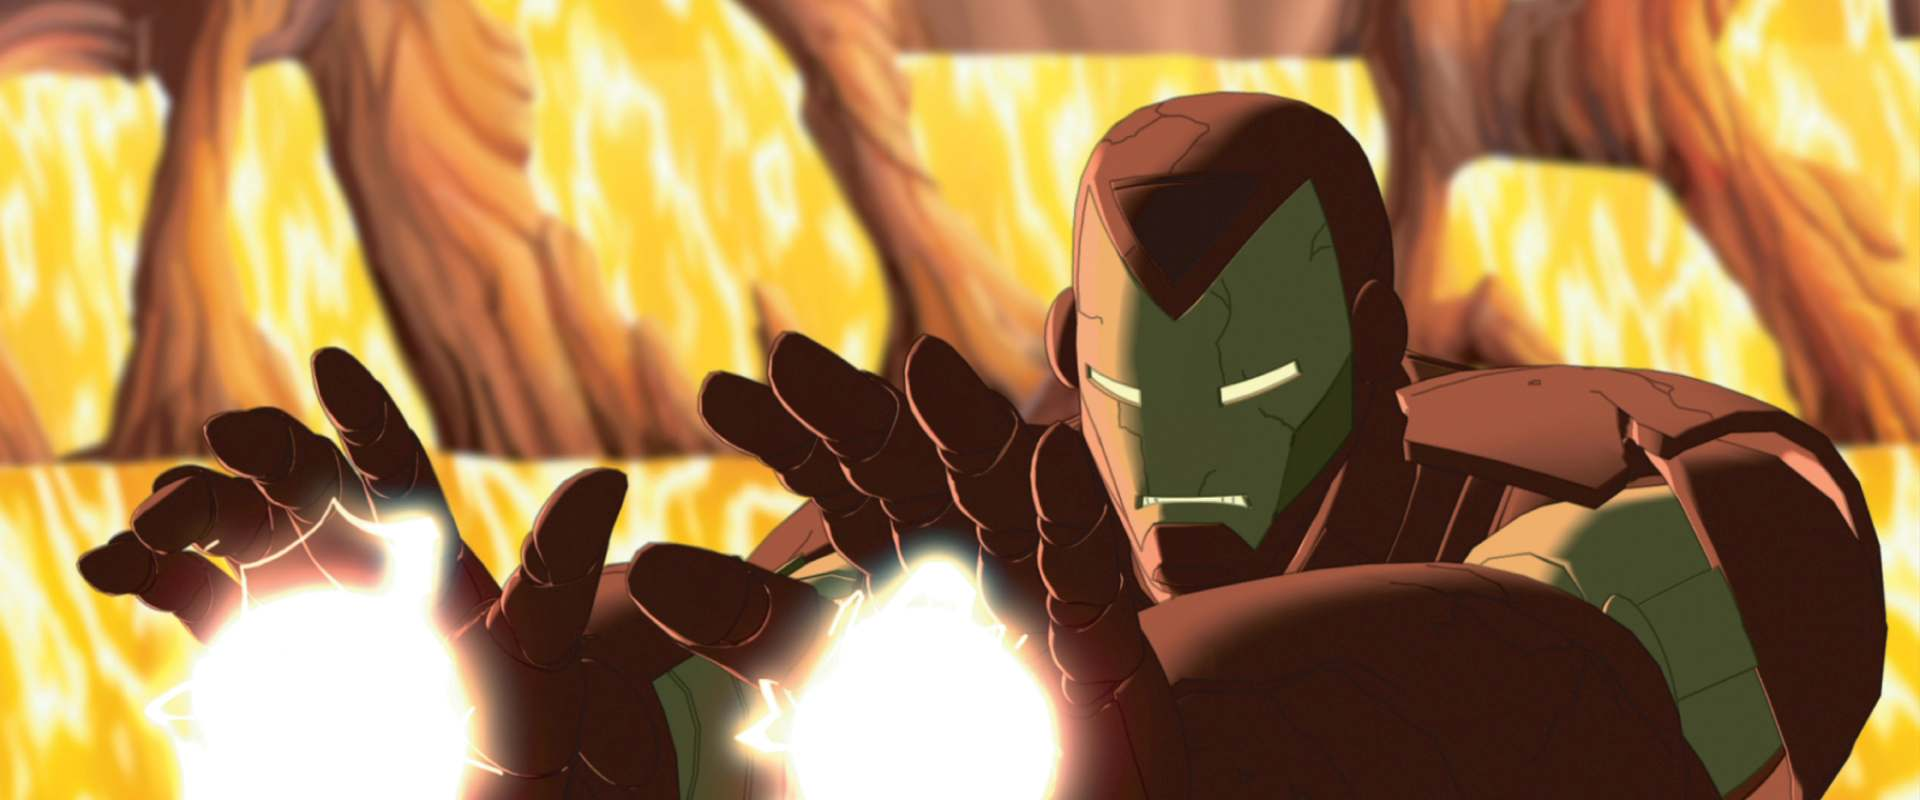 The Invincible Iron Man background 1